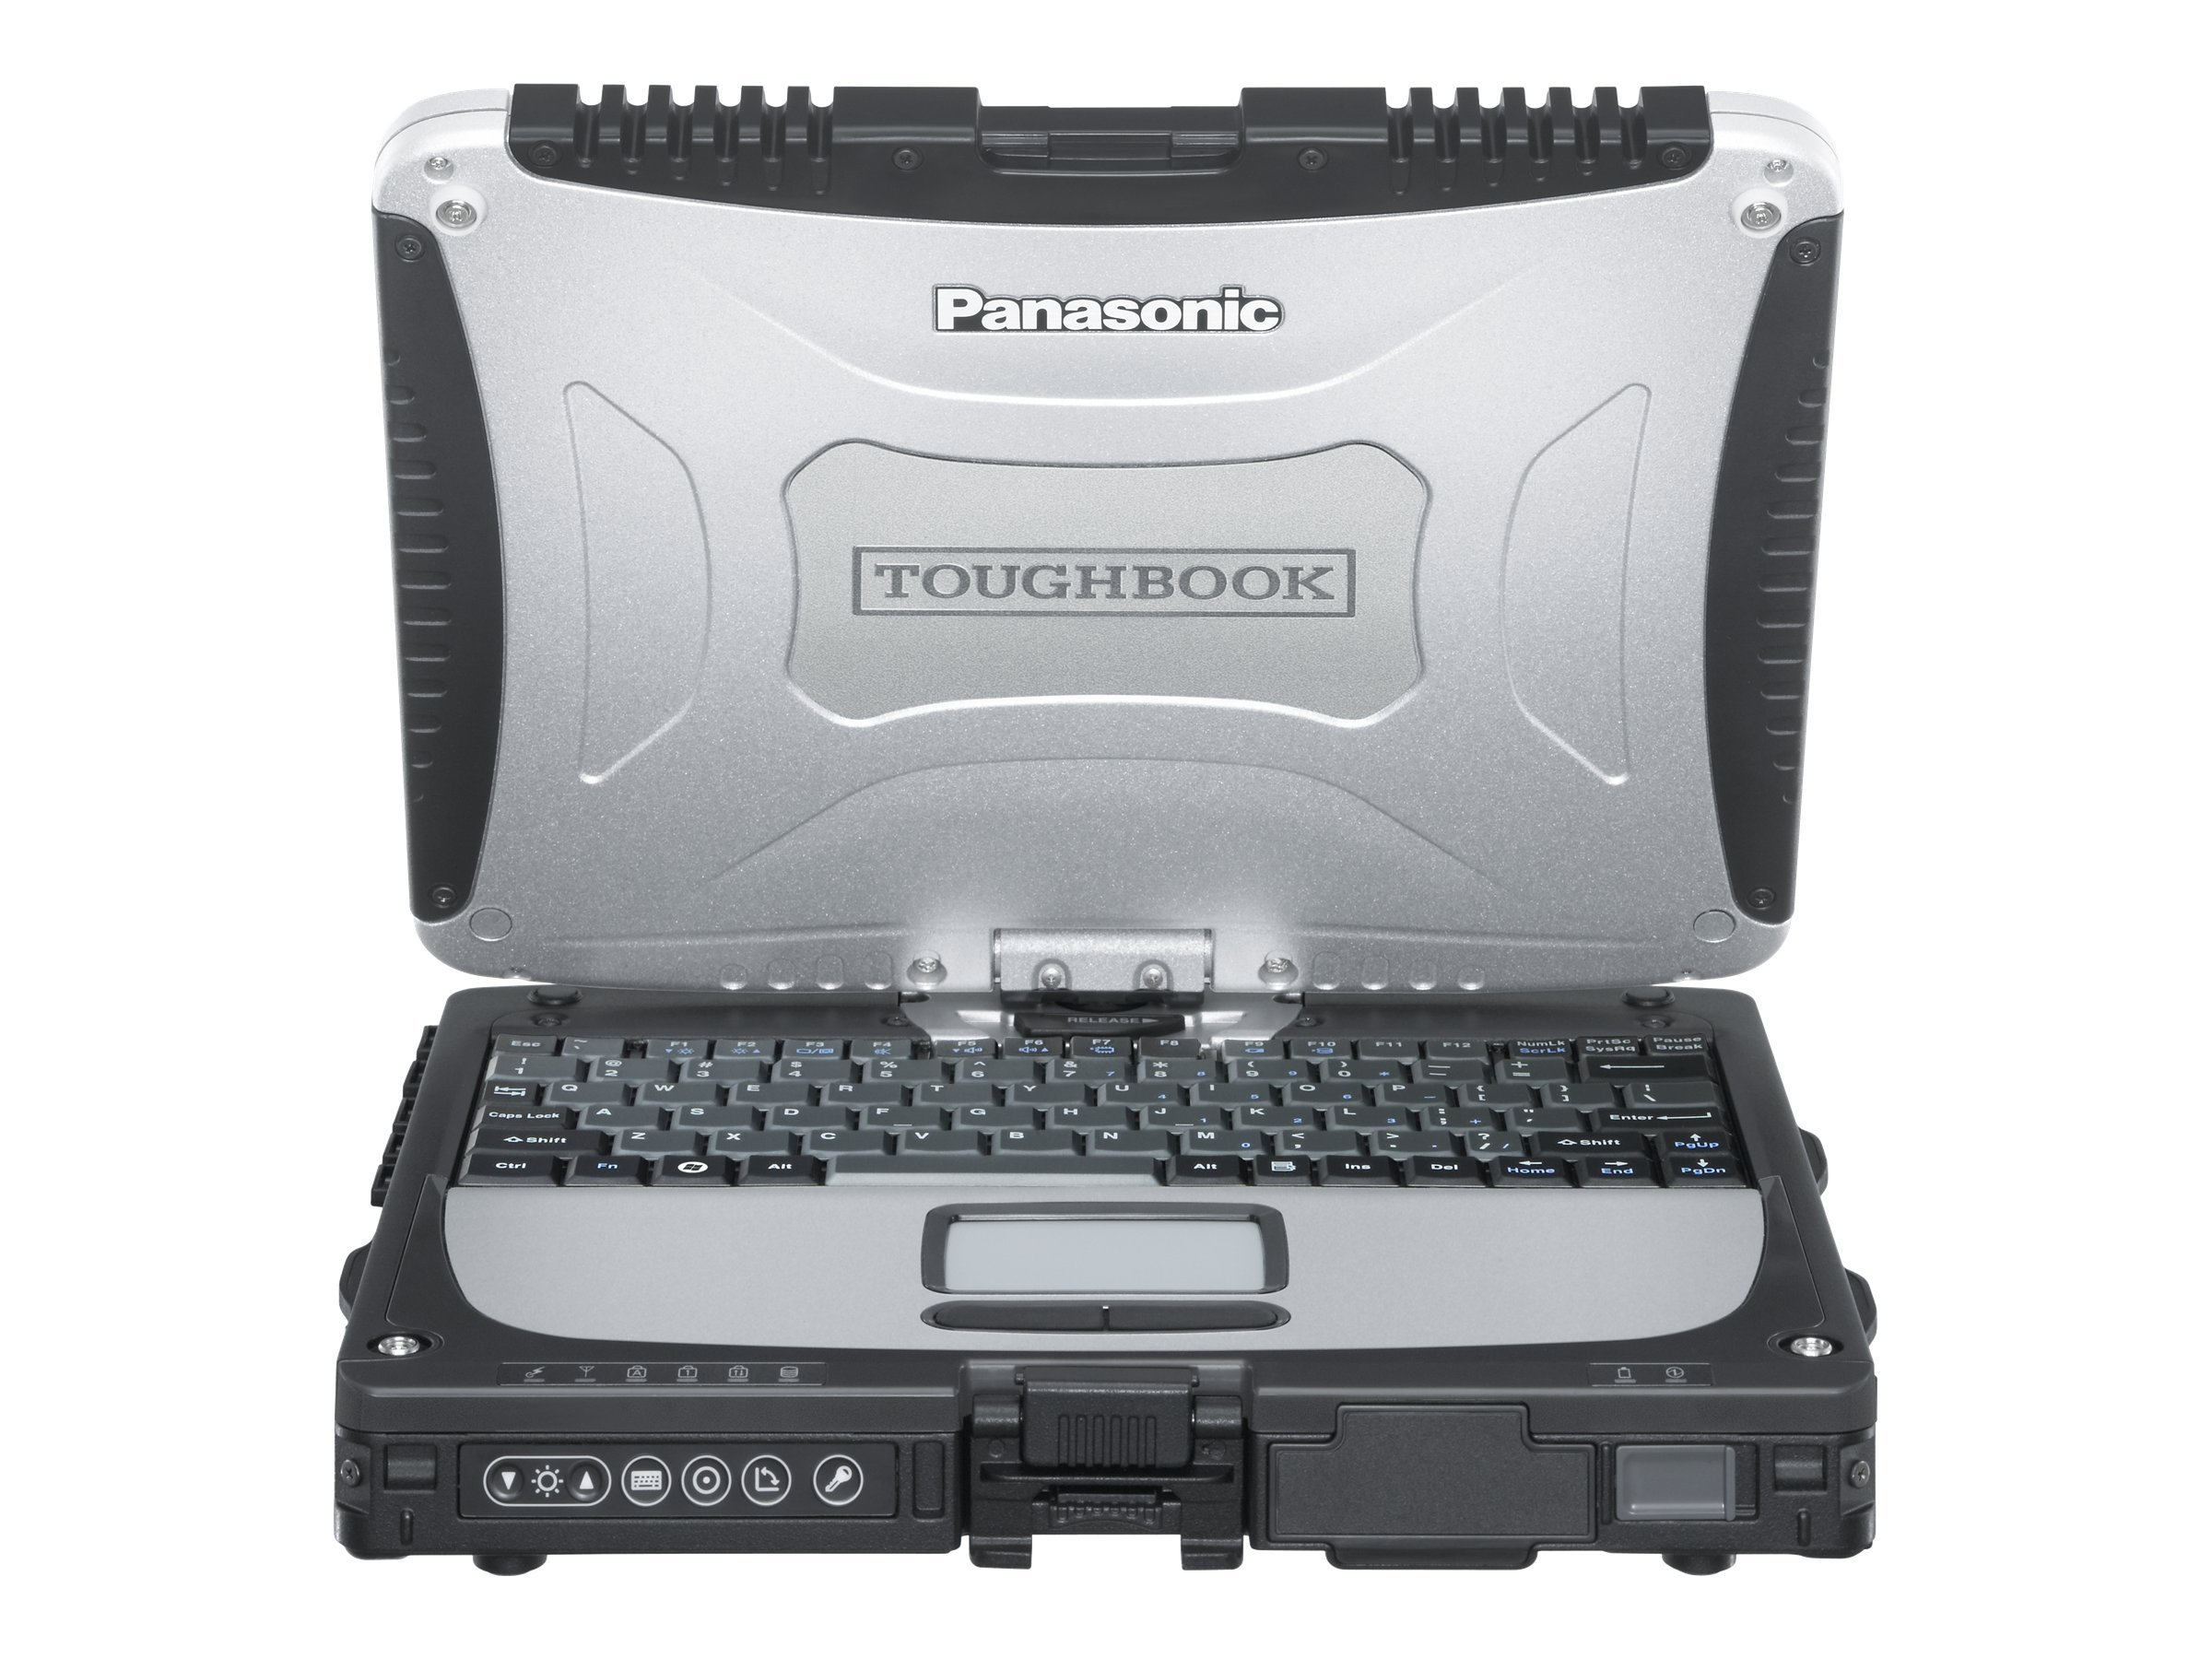 Panasonic Toughbook 19 vPro Core i5-3610ME 2.7GHz 500GB (7200RPM) 10.1 XGA MT W8.1P, CF-19ZE031BM